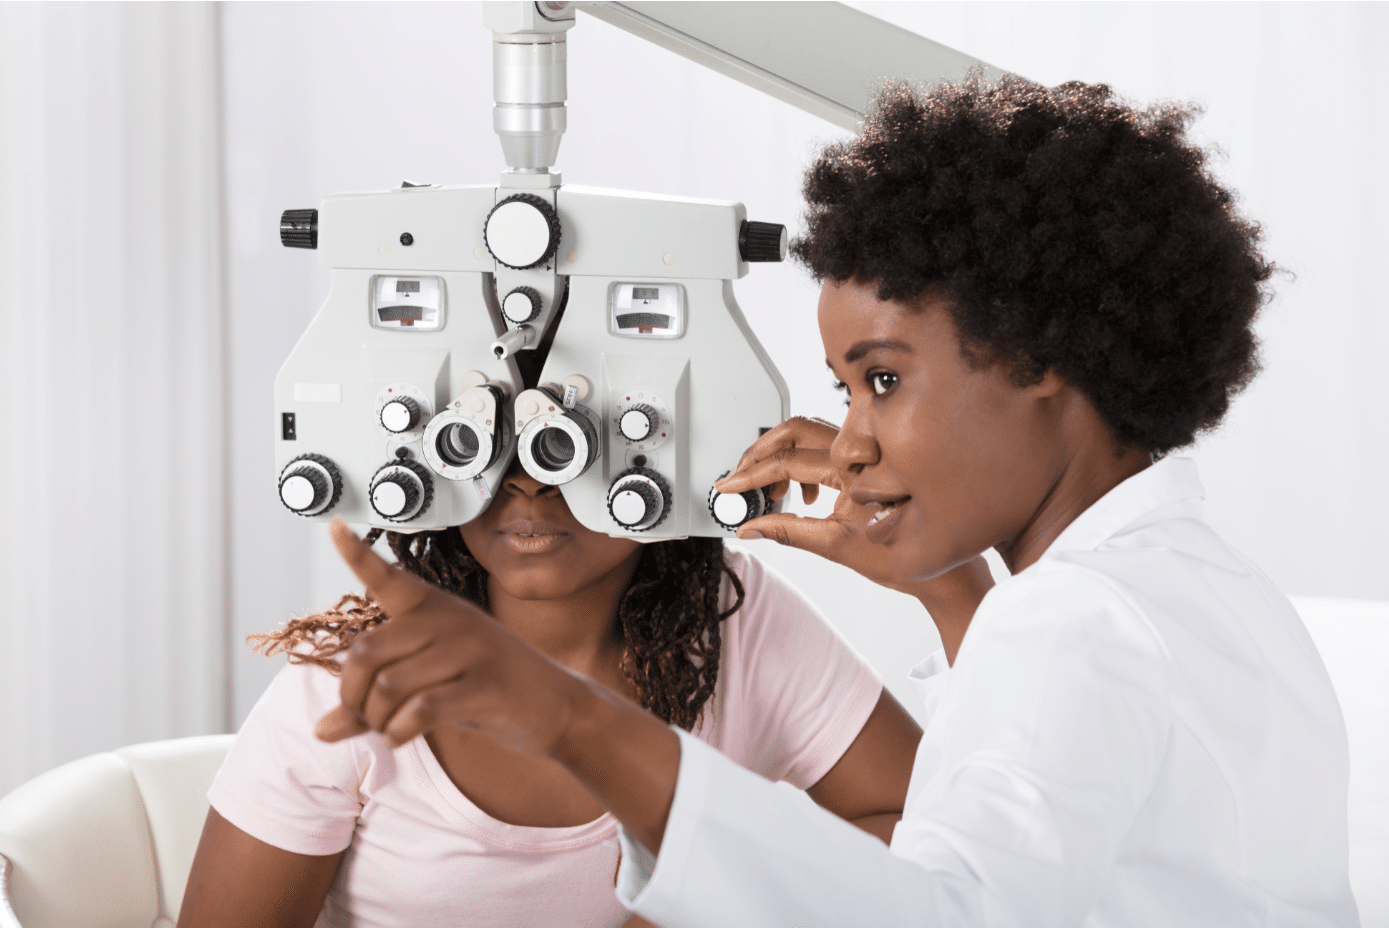 Female optometrist checking a patient's eyesight